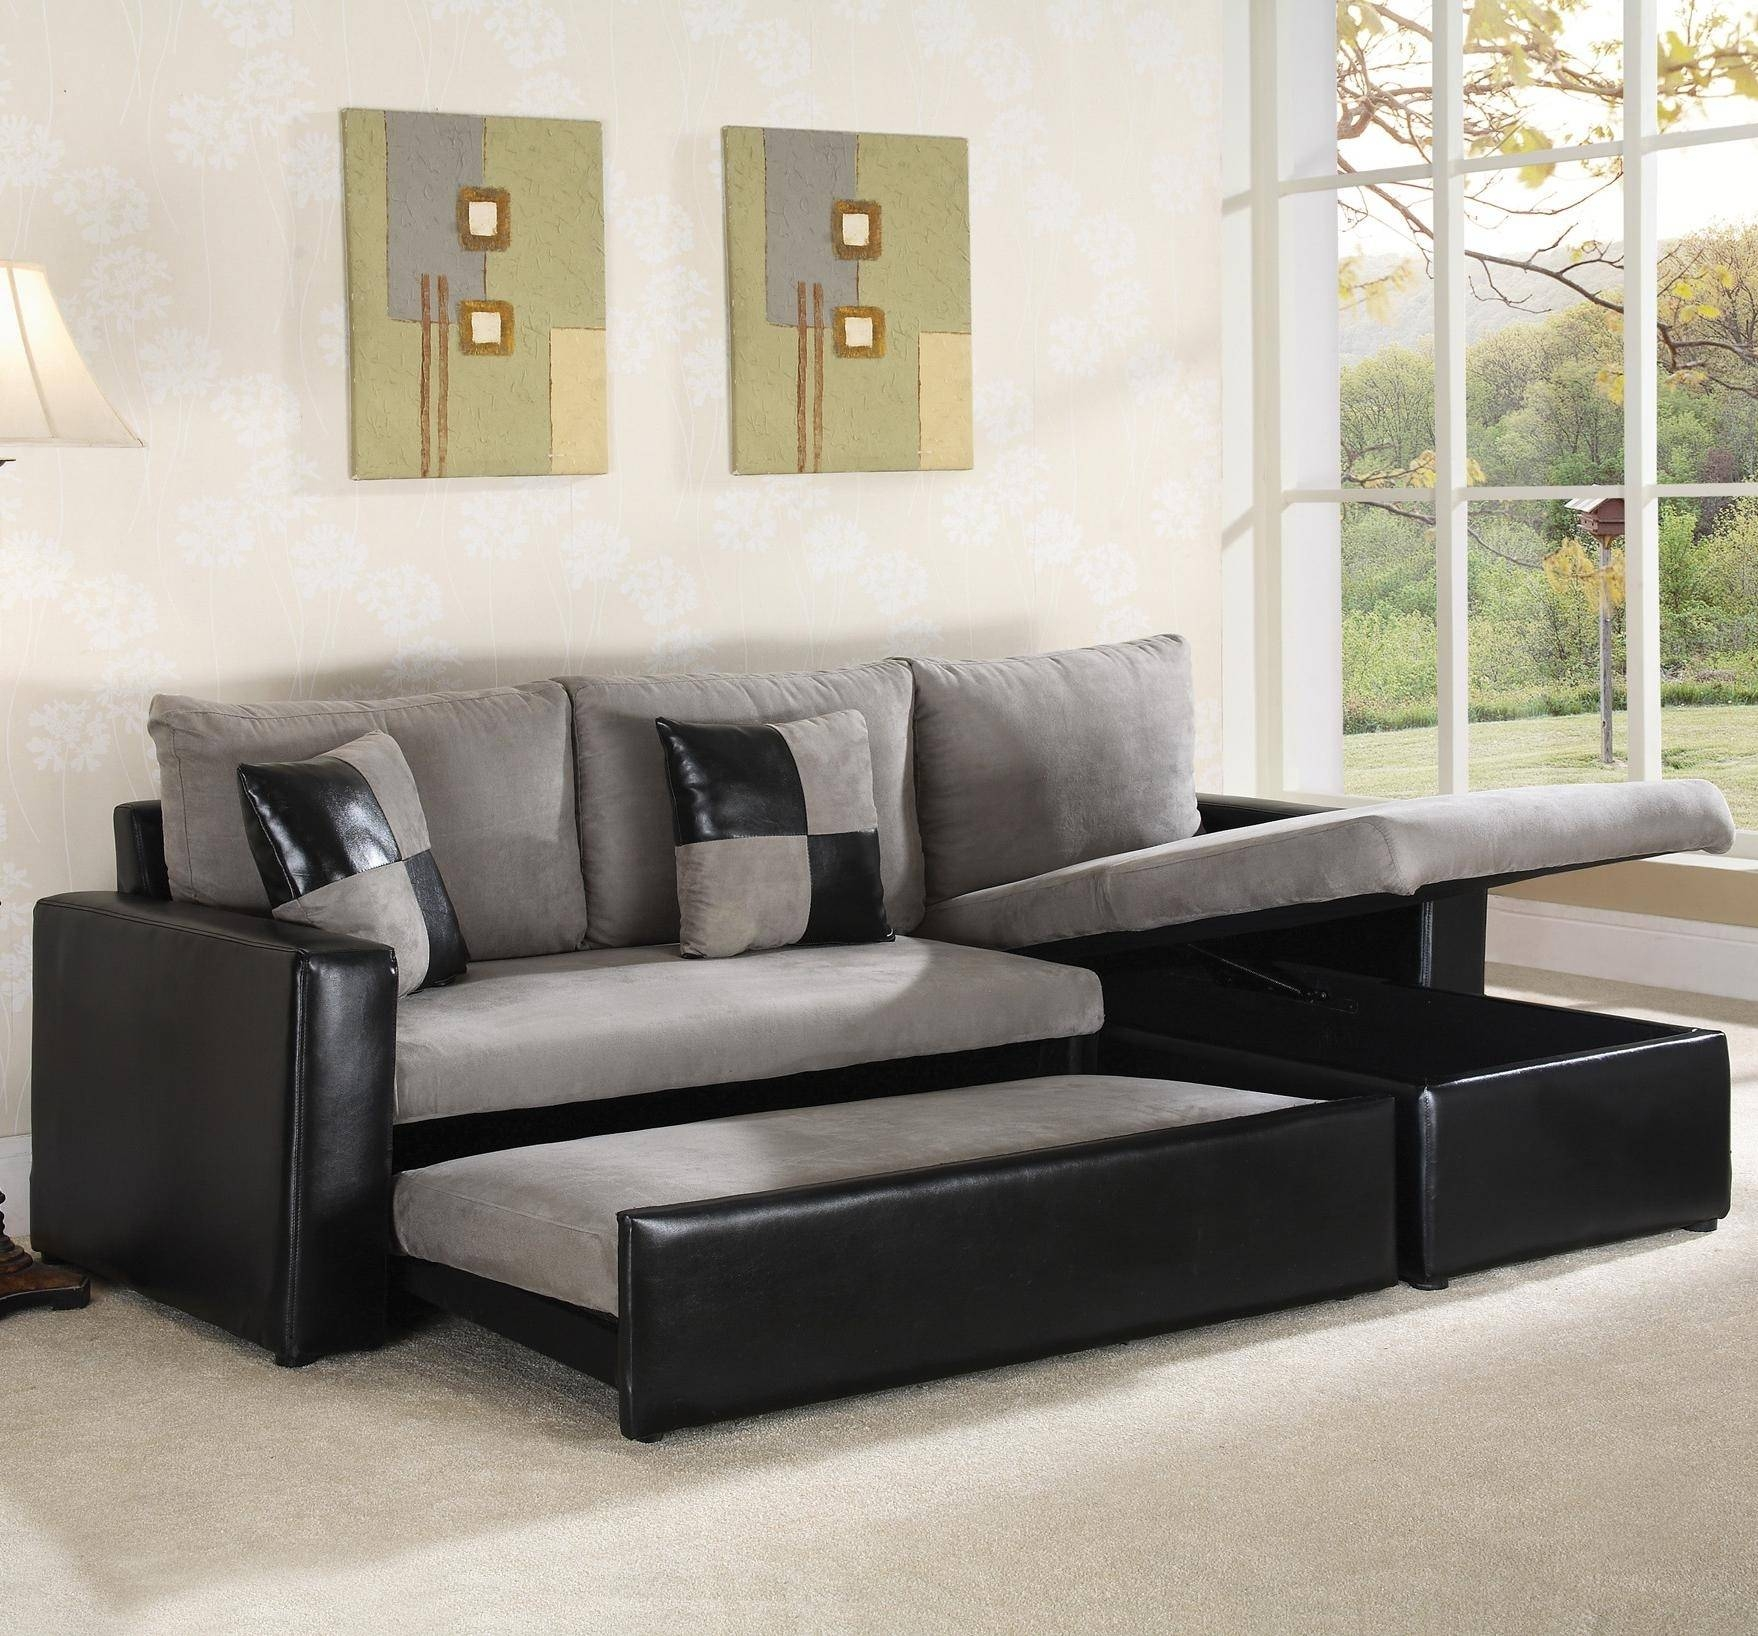 Sectional Sleeper Sofa With Storage For Small House within Black Leather Sectional Sleeper Sofas (Image 21 of 30)